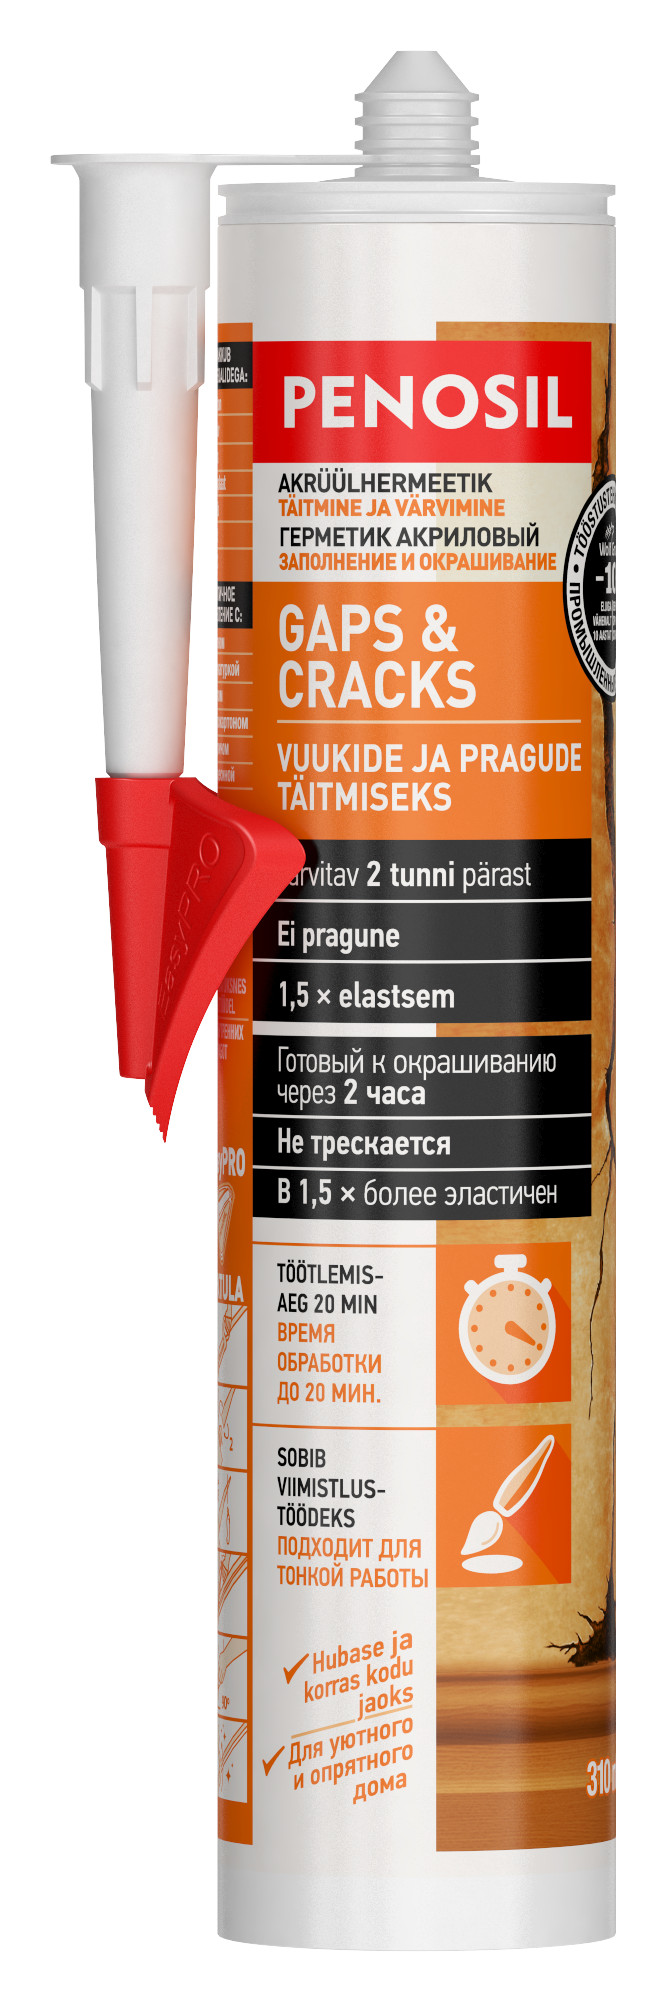 MET_1691_PENOSIL_Gaps_Cracks_Acrylic_310ml_EE_RU_153x194mm_spaatel